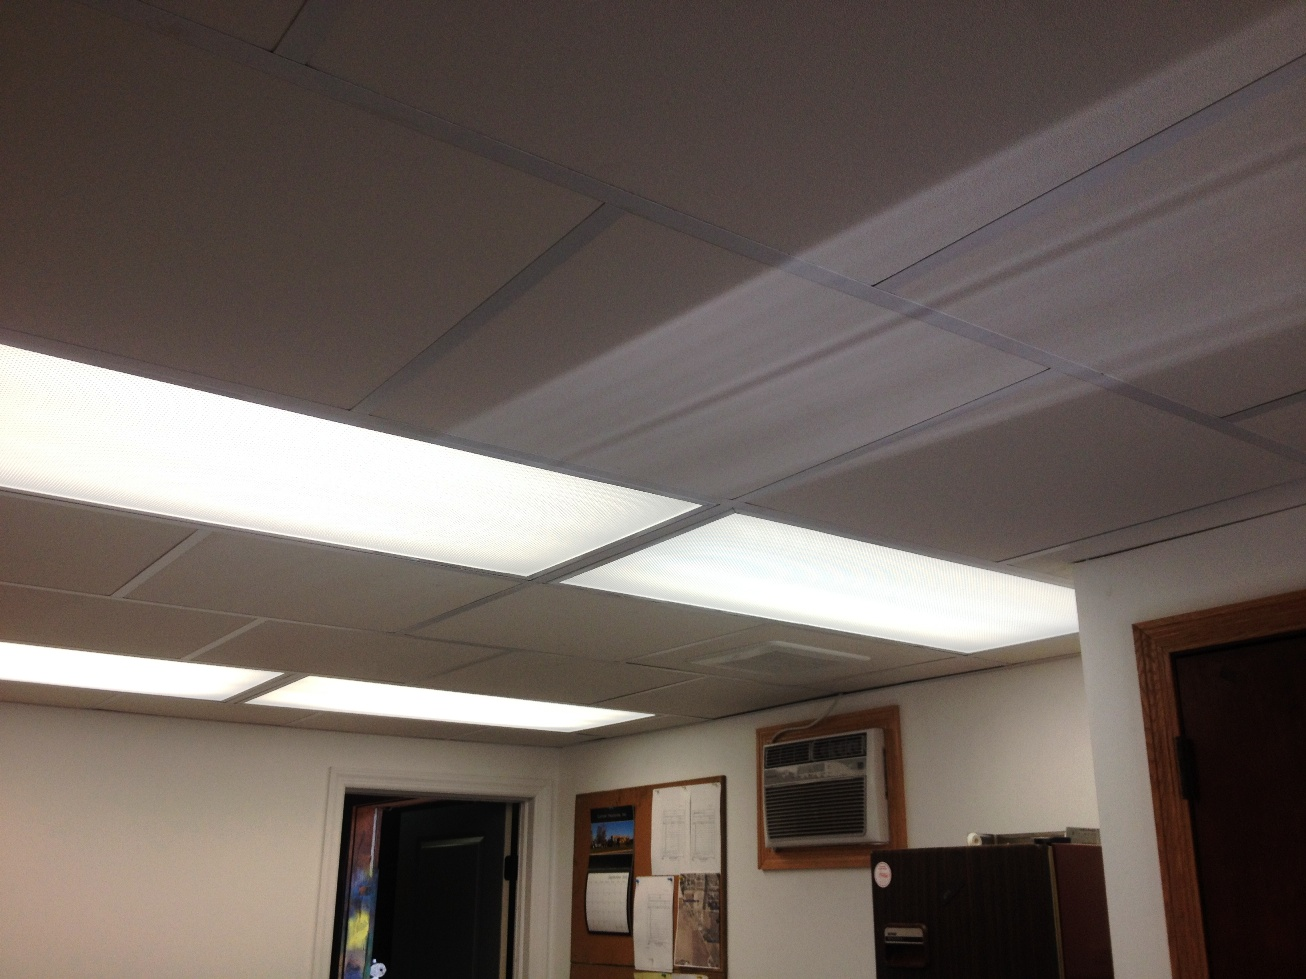 Insulating Fiberglass Ceiling Tiles With High Nrc Value